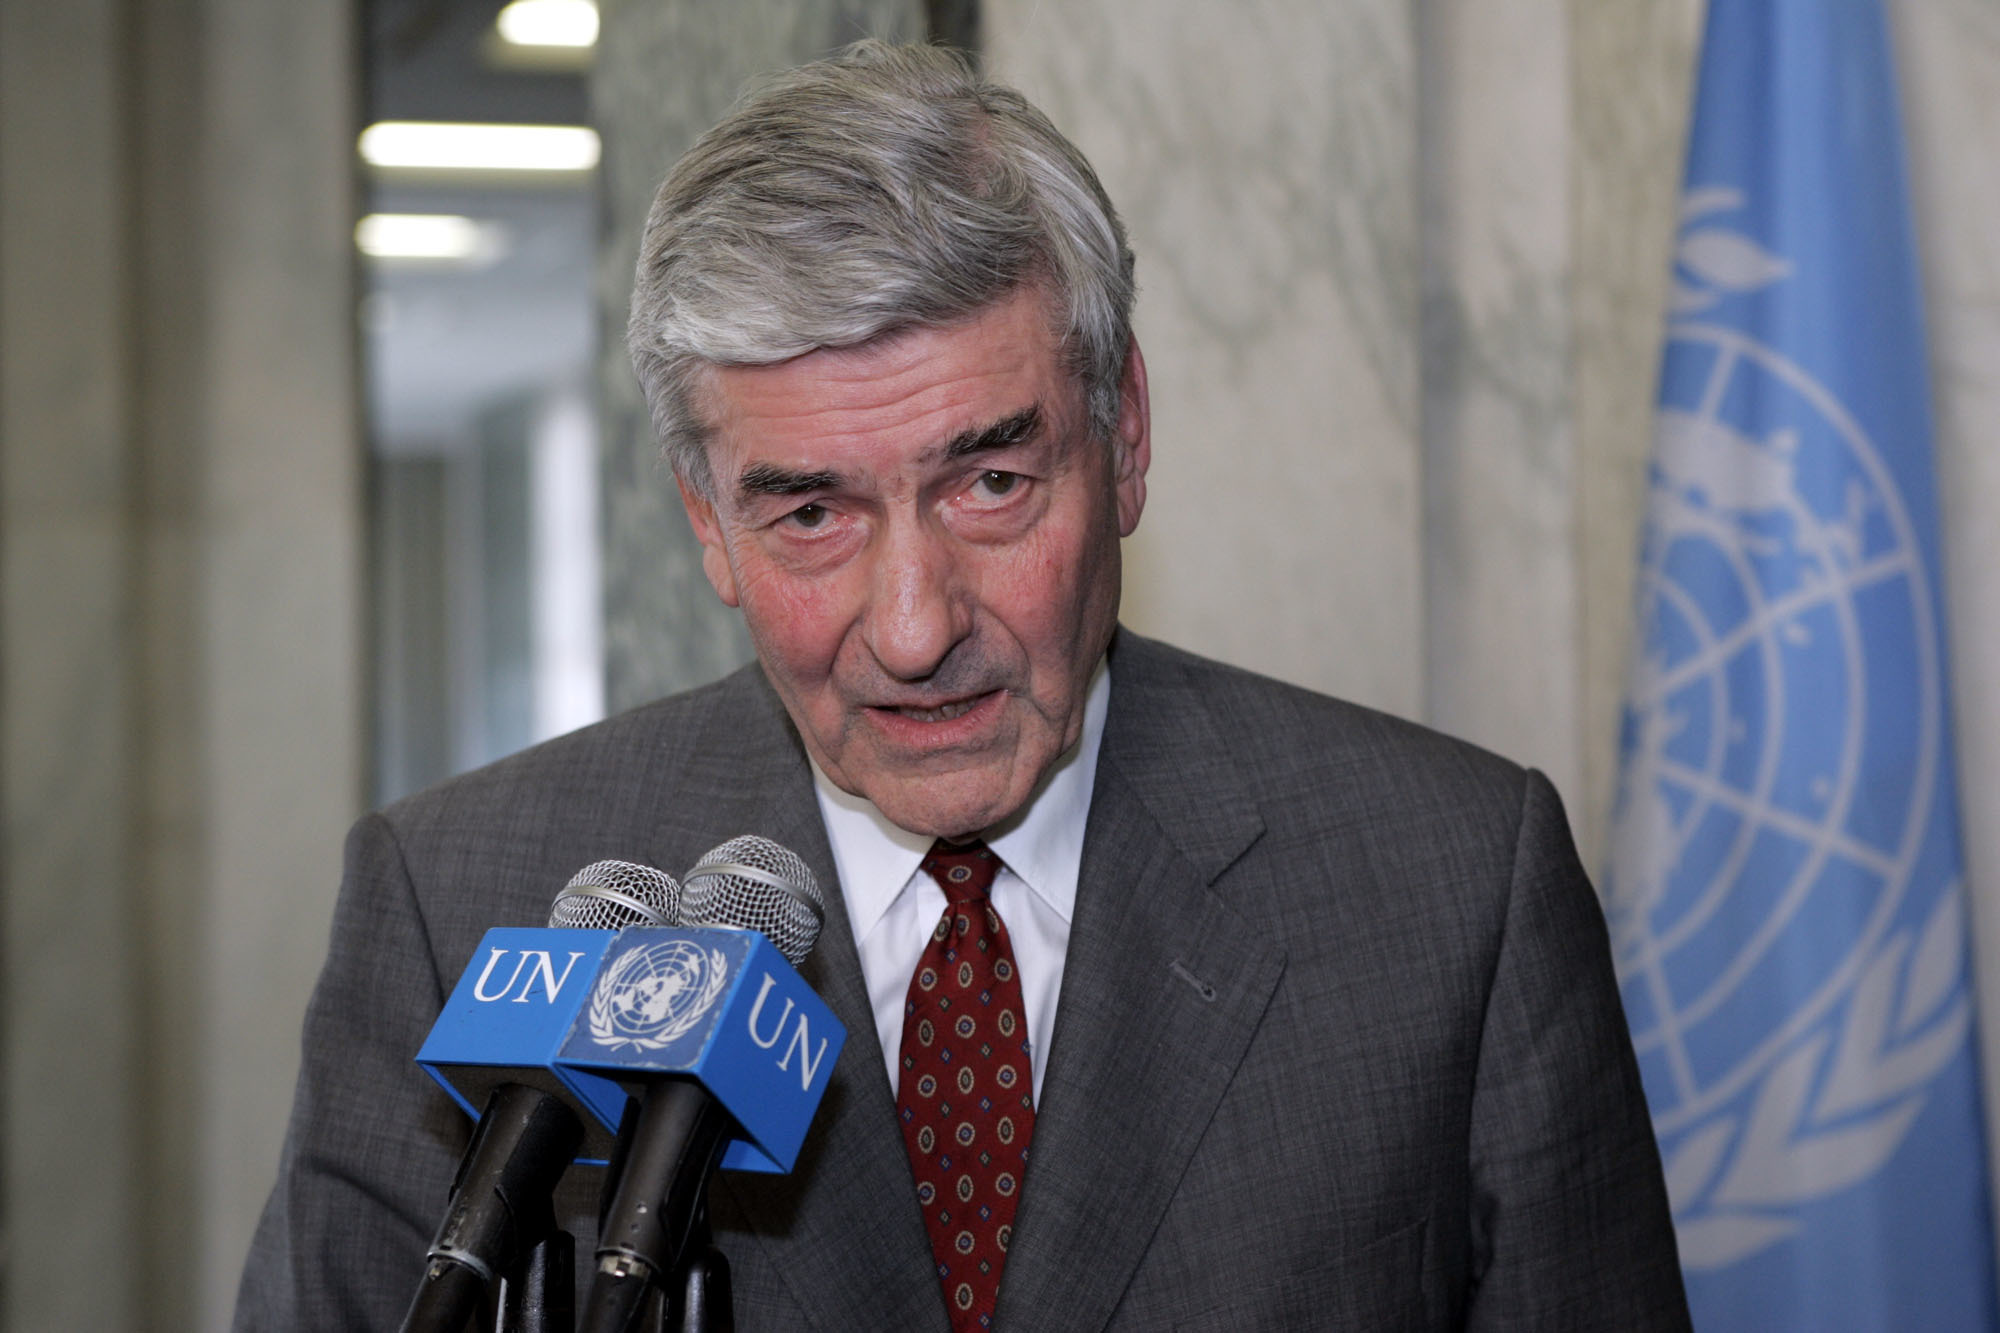 FILE - In this file photo dated Friday, Feb. 18, 2005, High Commissioner for Refugees Ruud Lubbers speaks to reporters at UN headquarters in New York.  Longest-serving Dutch premier, Lubbers who guided his country through economic turmoil to prosperity, a